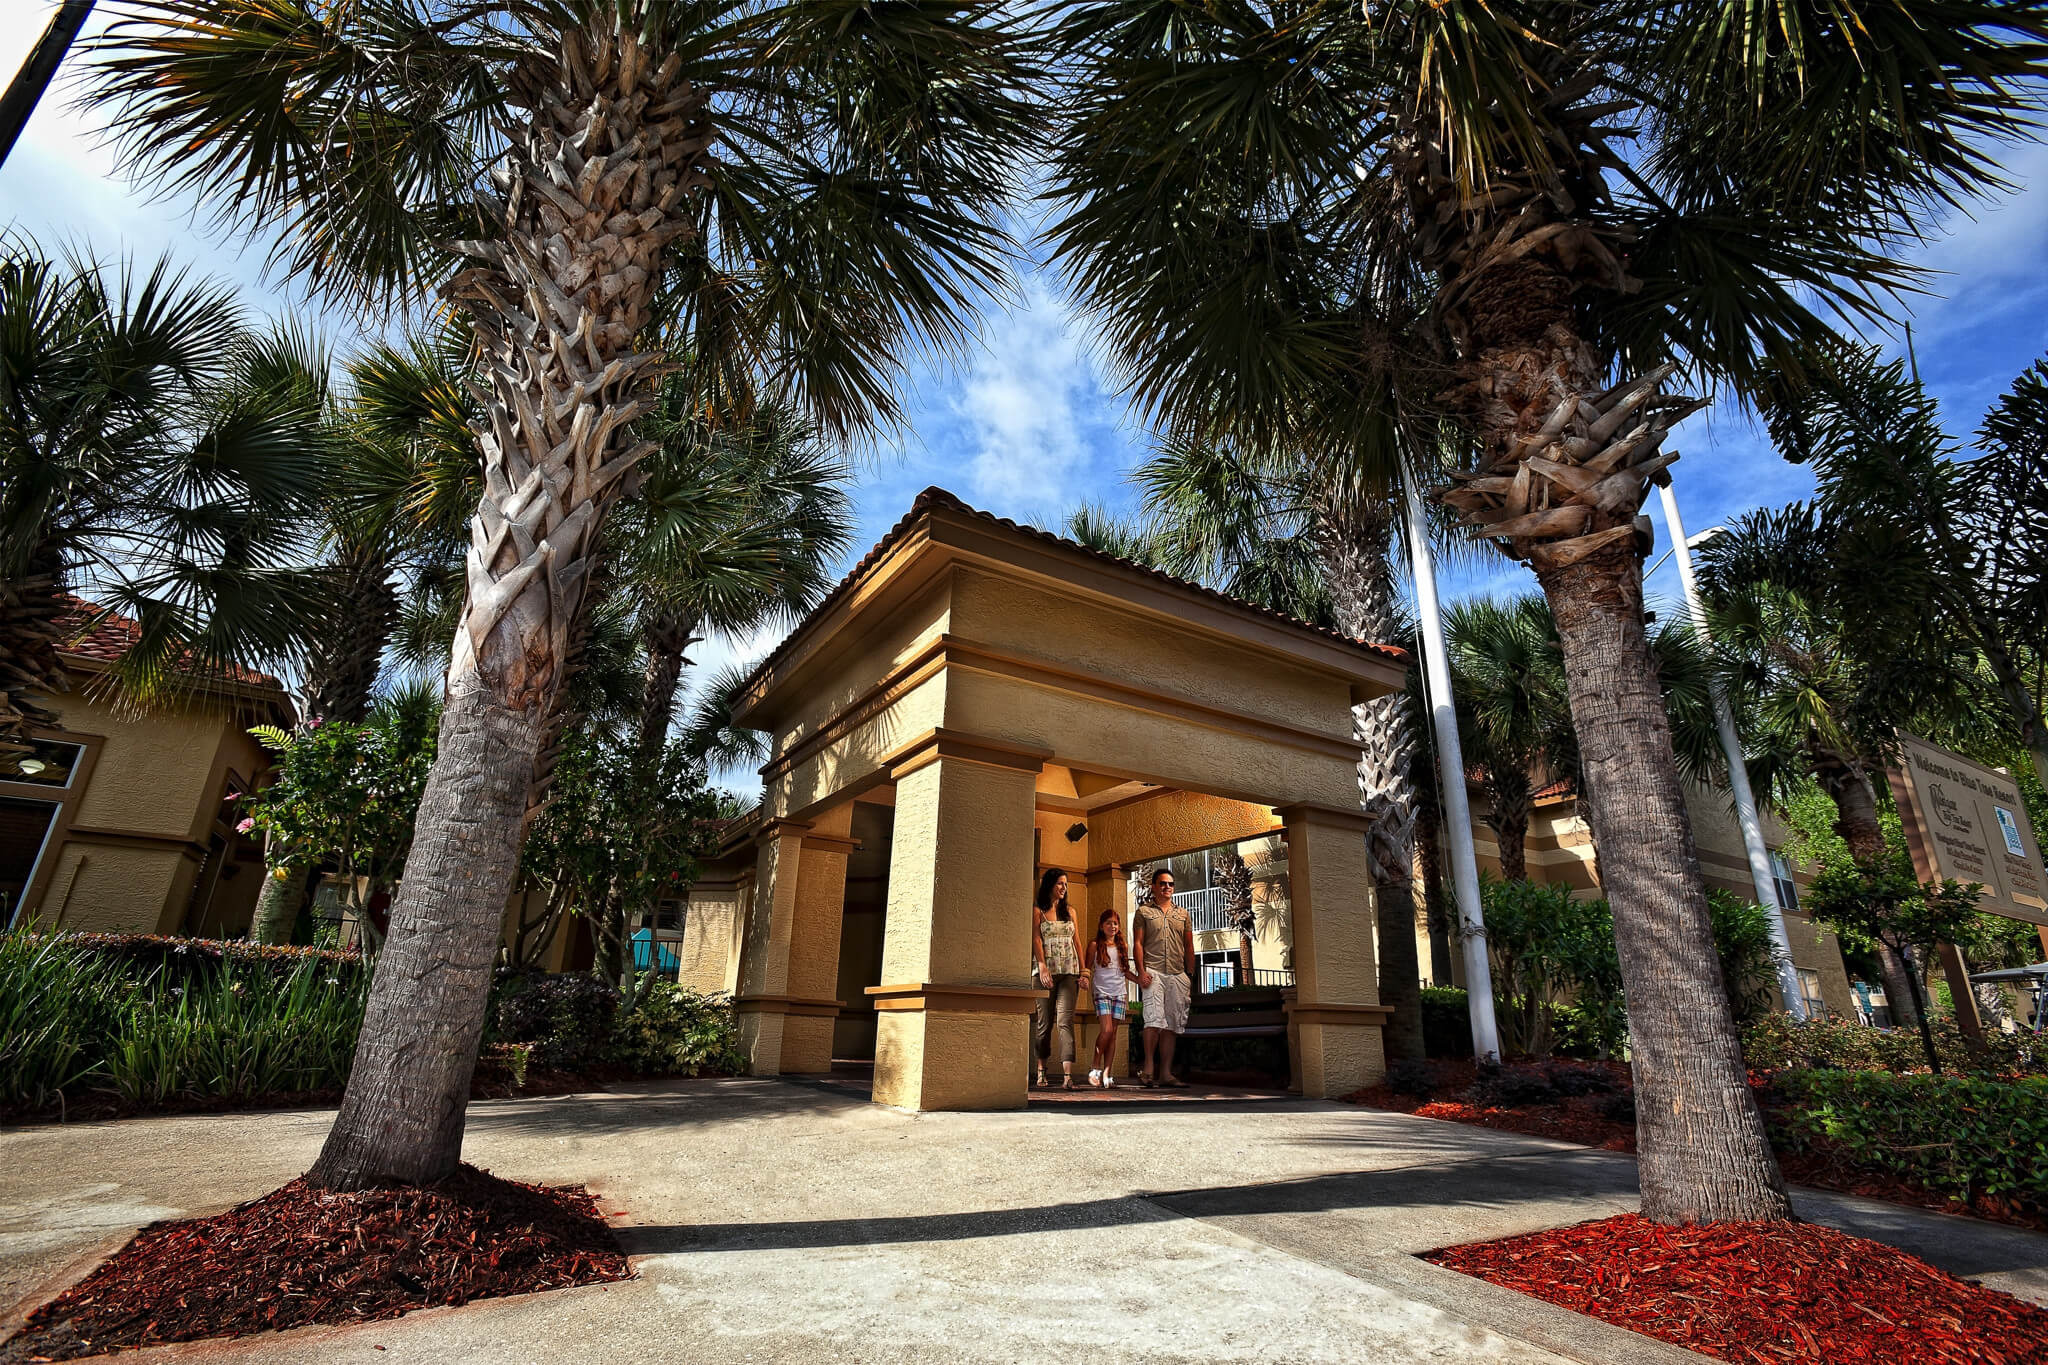 Guests exploring Resort grounds | Westgate Blue Tree Resort | Westgate Resorts Orlando